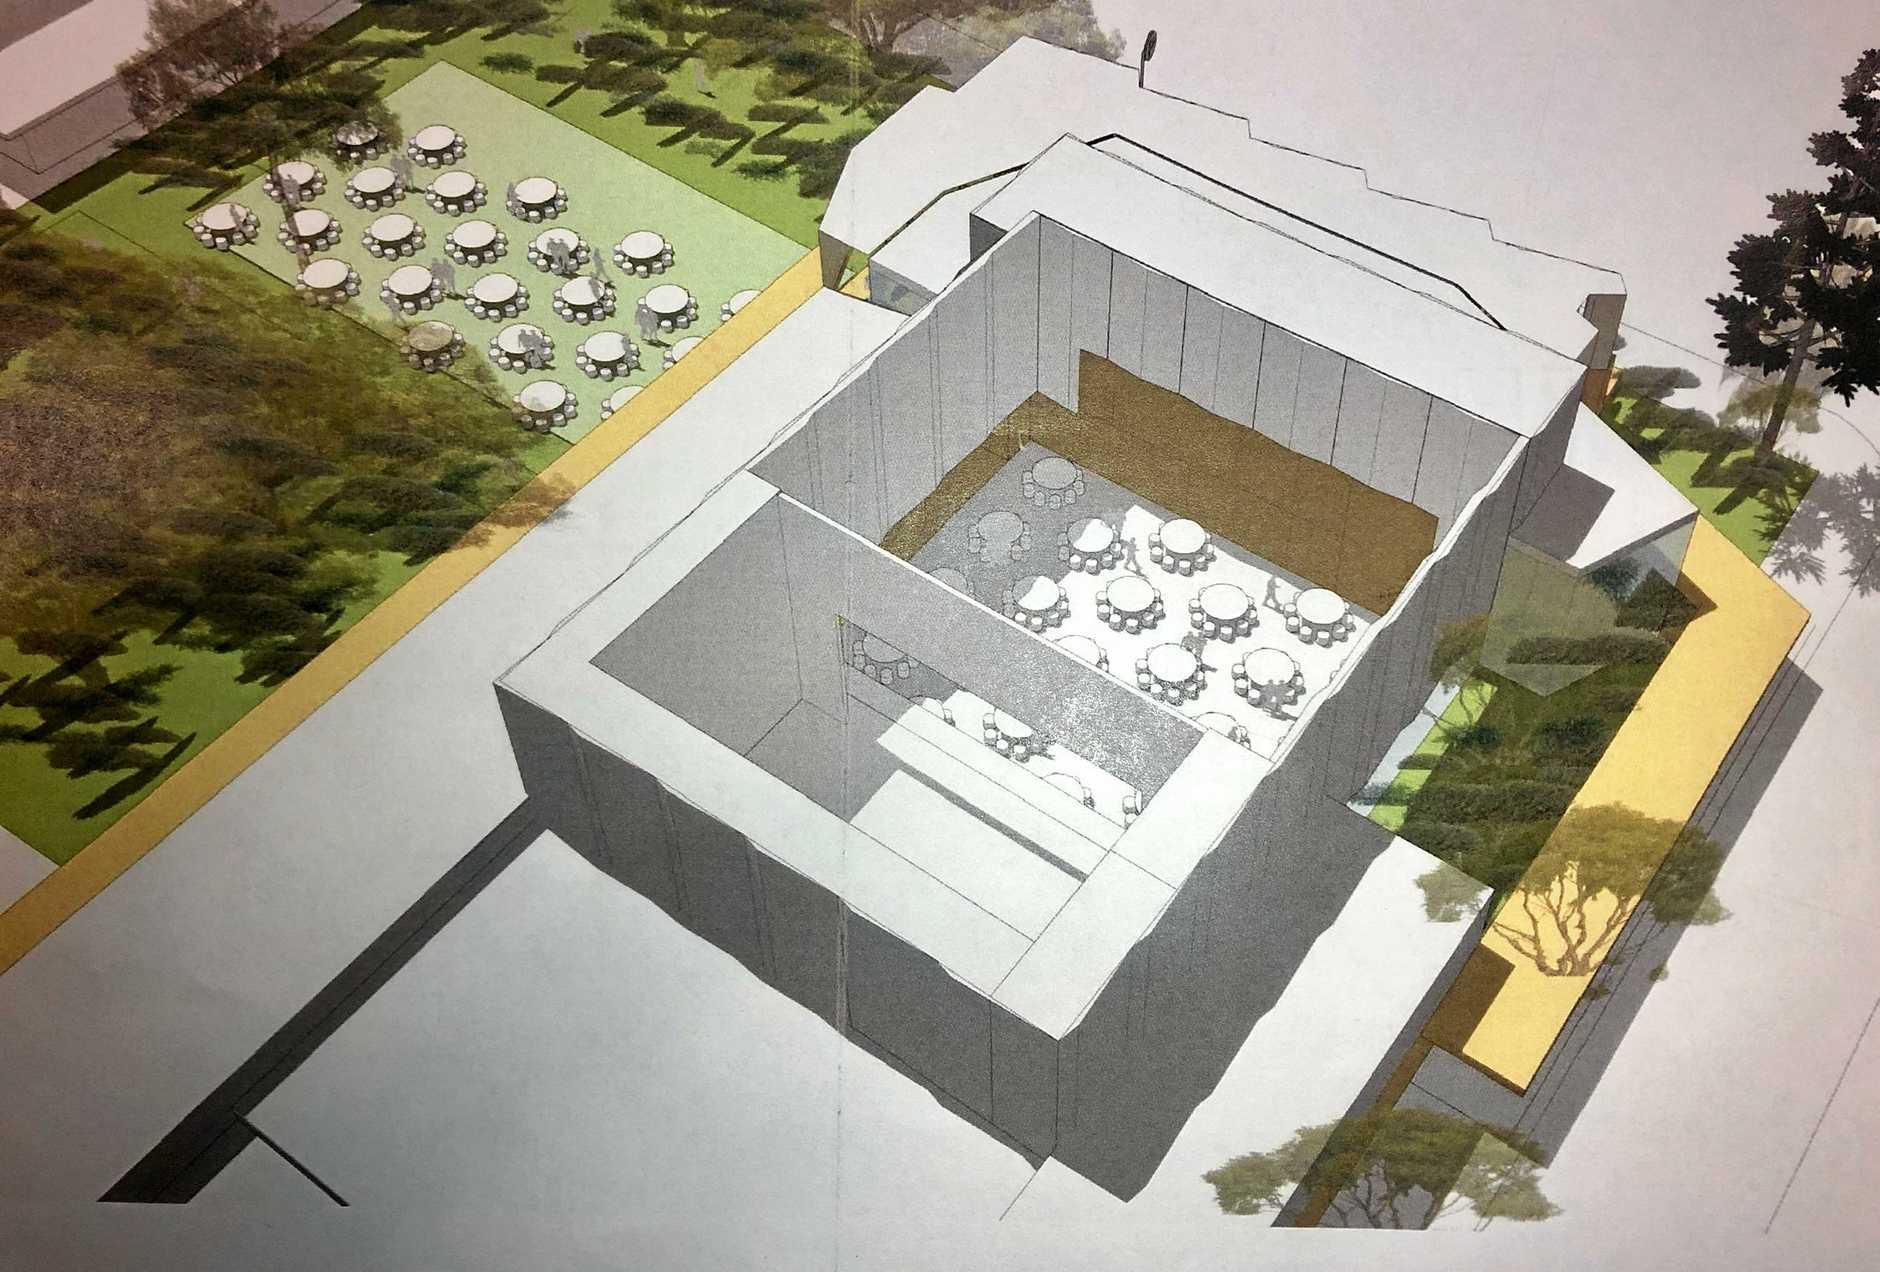 MULTI PURPOSE: The proposed design includes retractable seating, which will allow for the auditorium so host banquets and functions. Pictured is the auditorium in 'banquet mode'.